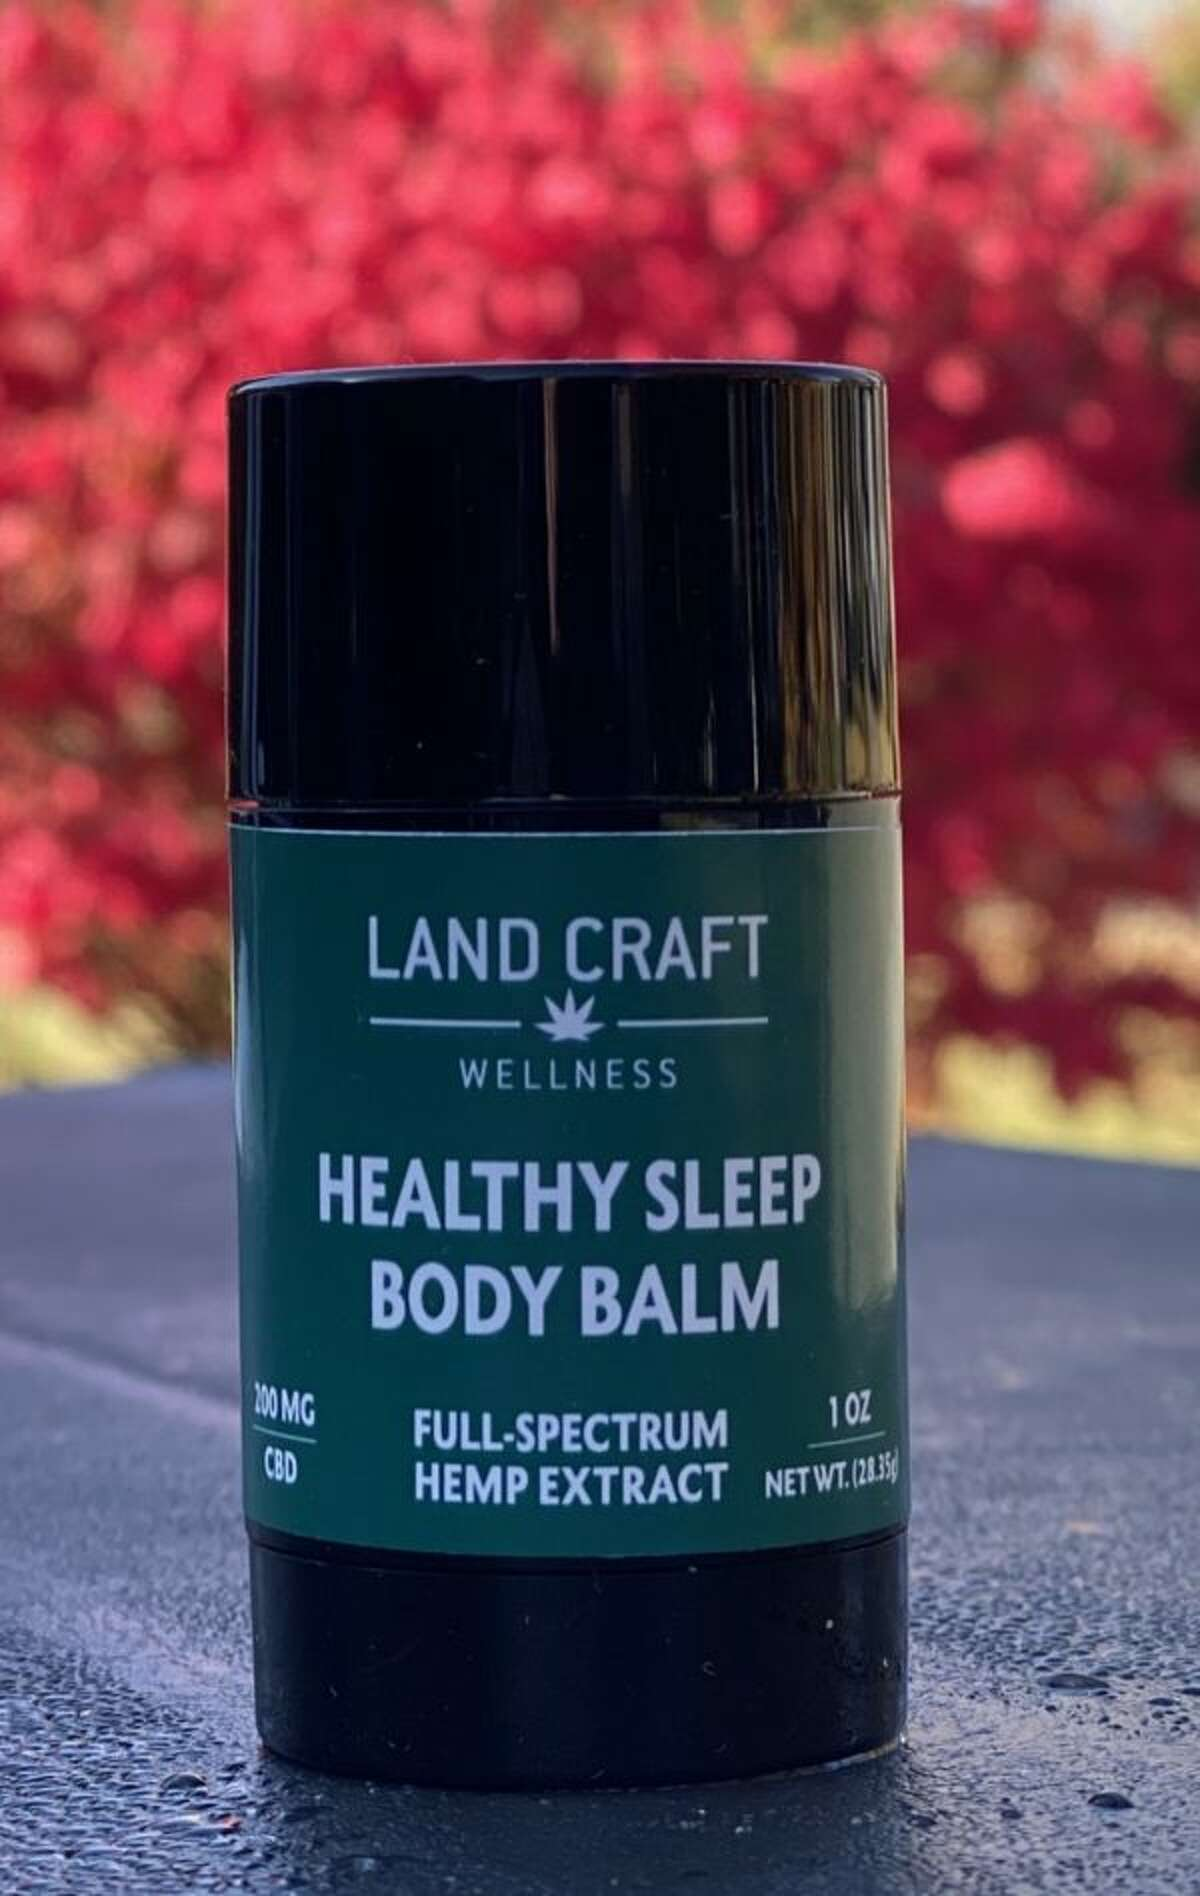 A balm from LandCraft Wellness. The Washington County company makes products with CBD oil, an extract of hemp that is said to ease various ailments and promote general wellbeing. (Photo courtesty LandCraft Wellness.)